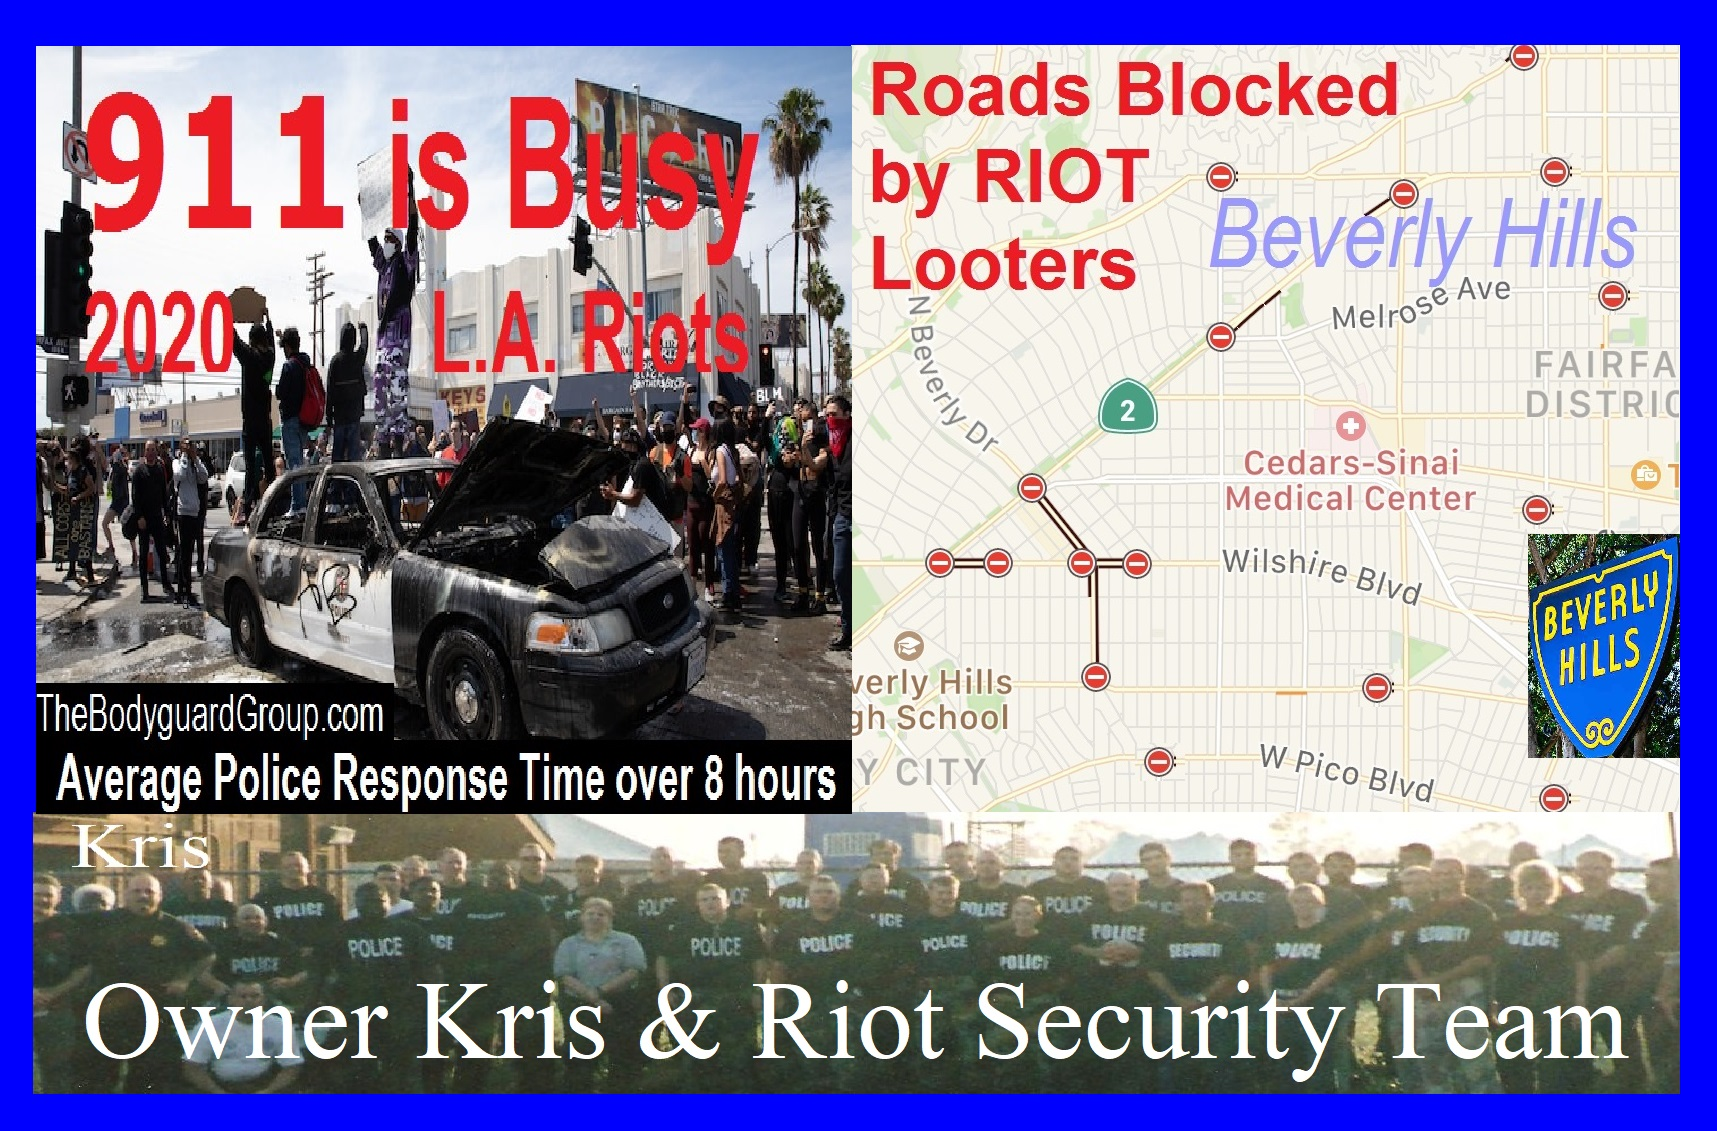 Kris Herzog Beverly Hills 90210 L.A. RIOTS 2020 The Bodyguard Group of Beverly HIlls riot security guards